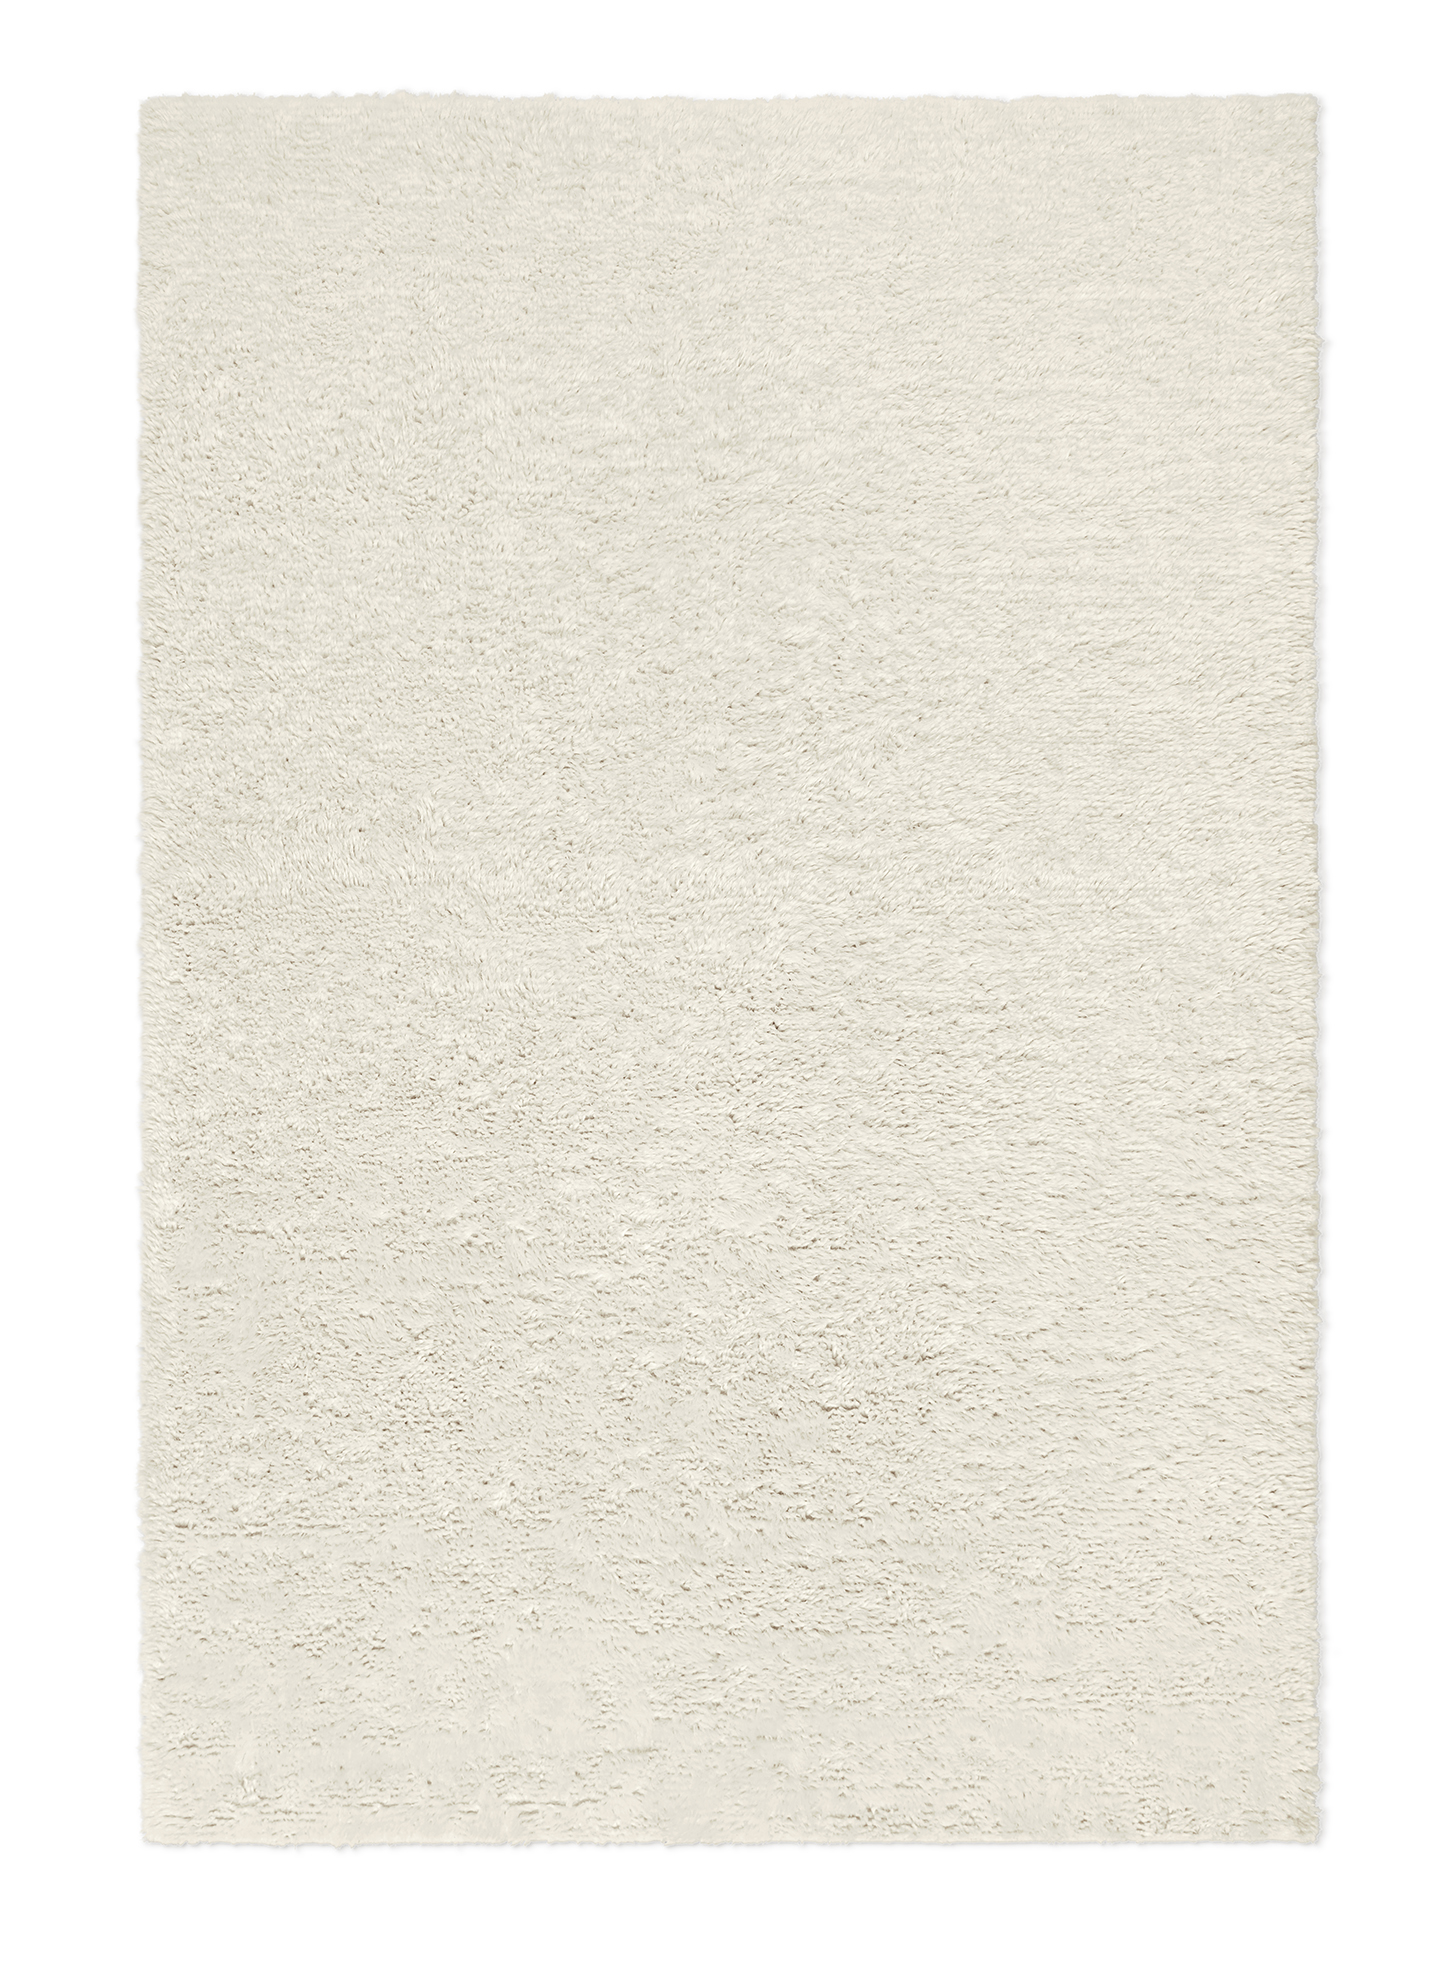 Campaign page. Product image of white, shaggy wool rug Fields.